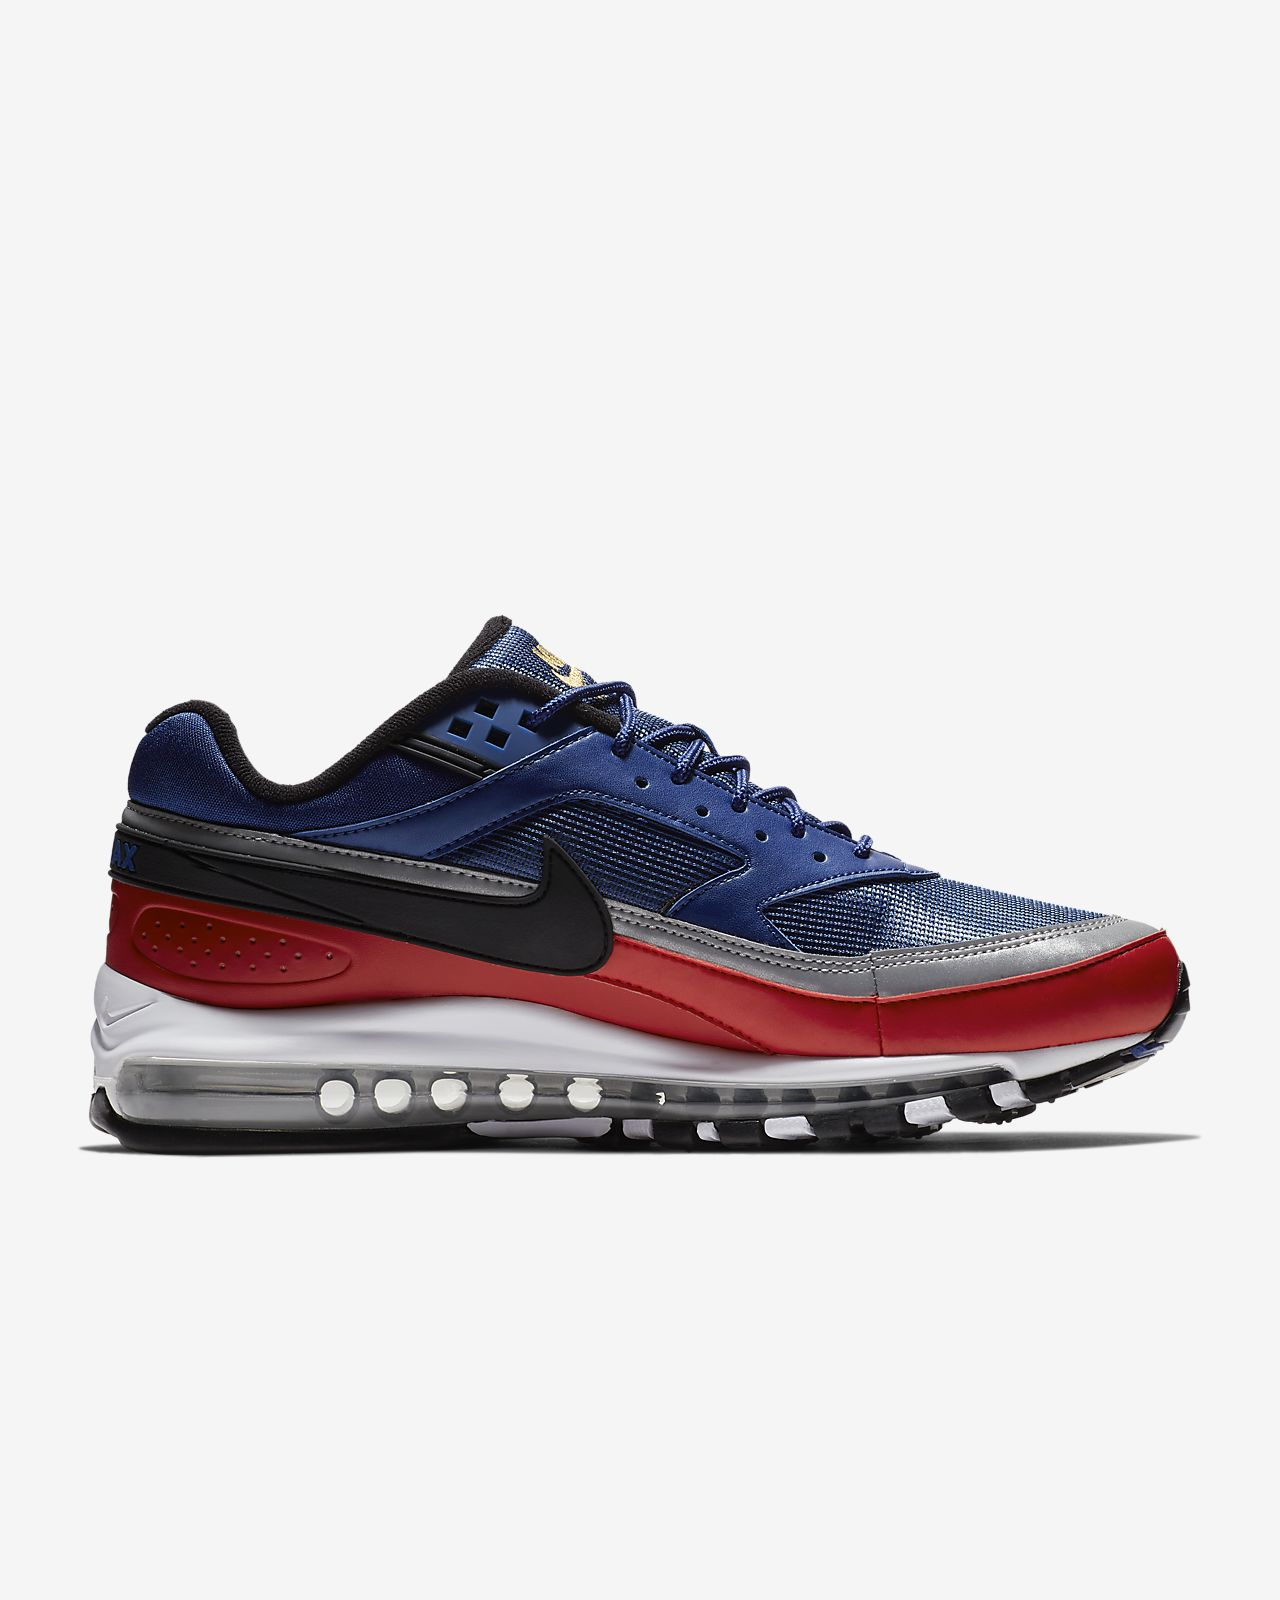 pas cher pour réduction 6c94d 1f50e Nike Air Max 97/BW Men's Shoe